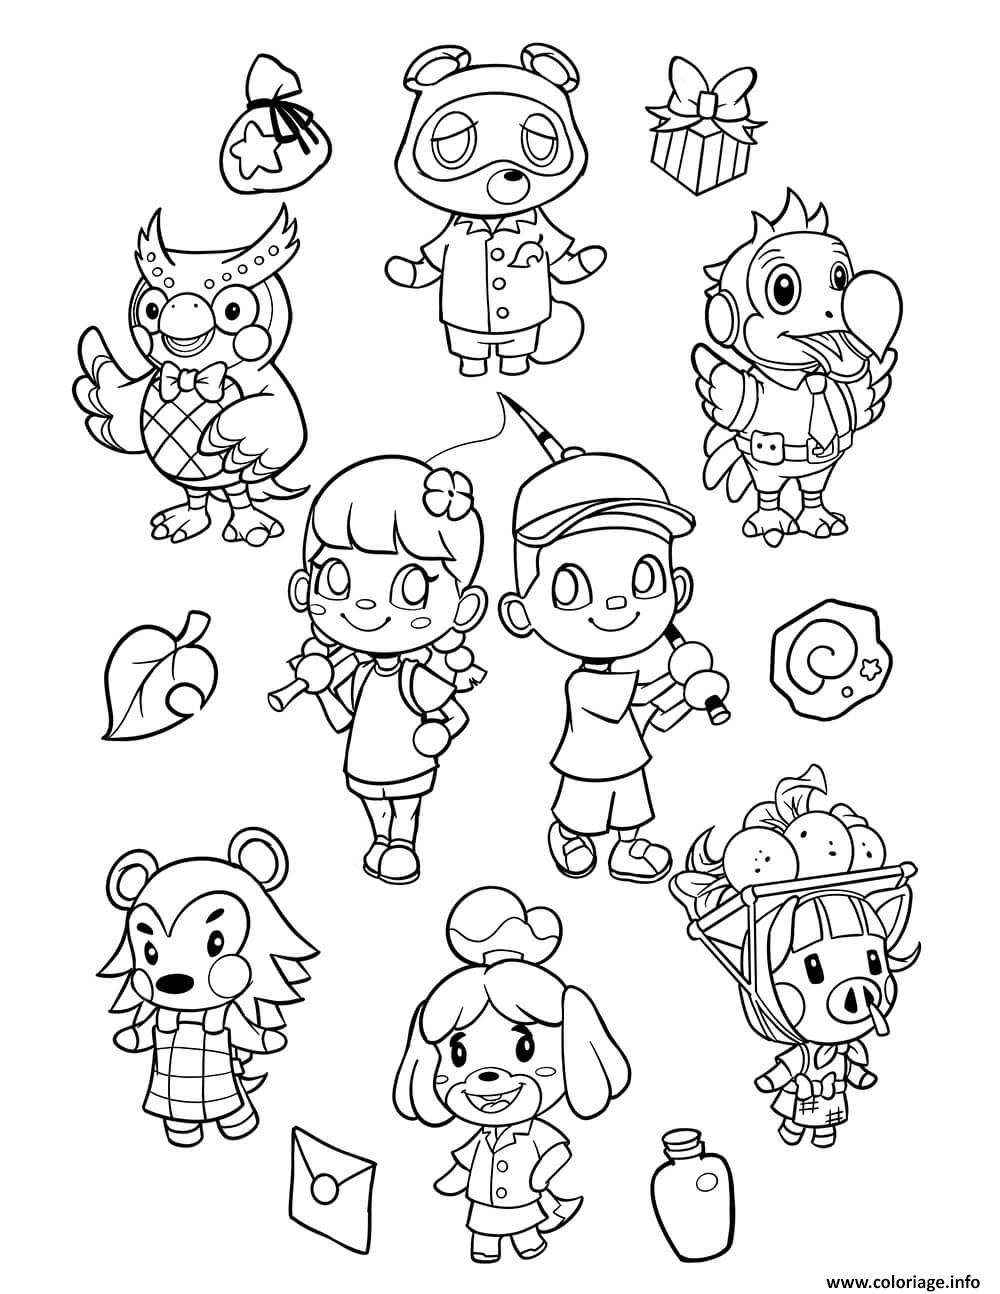 Dessin animal crossing new horizons Coloriage Gratuit à Imprimer